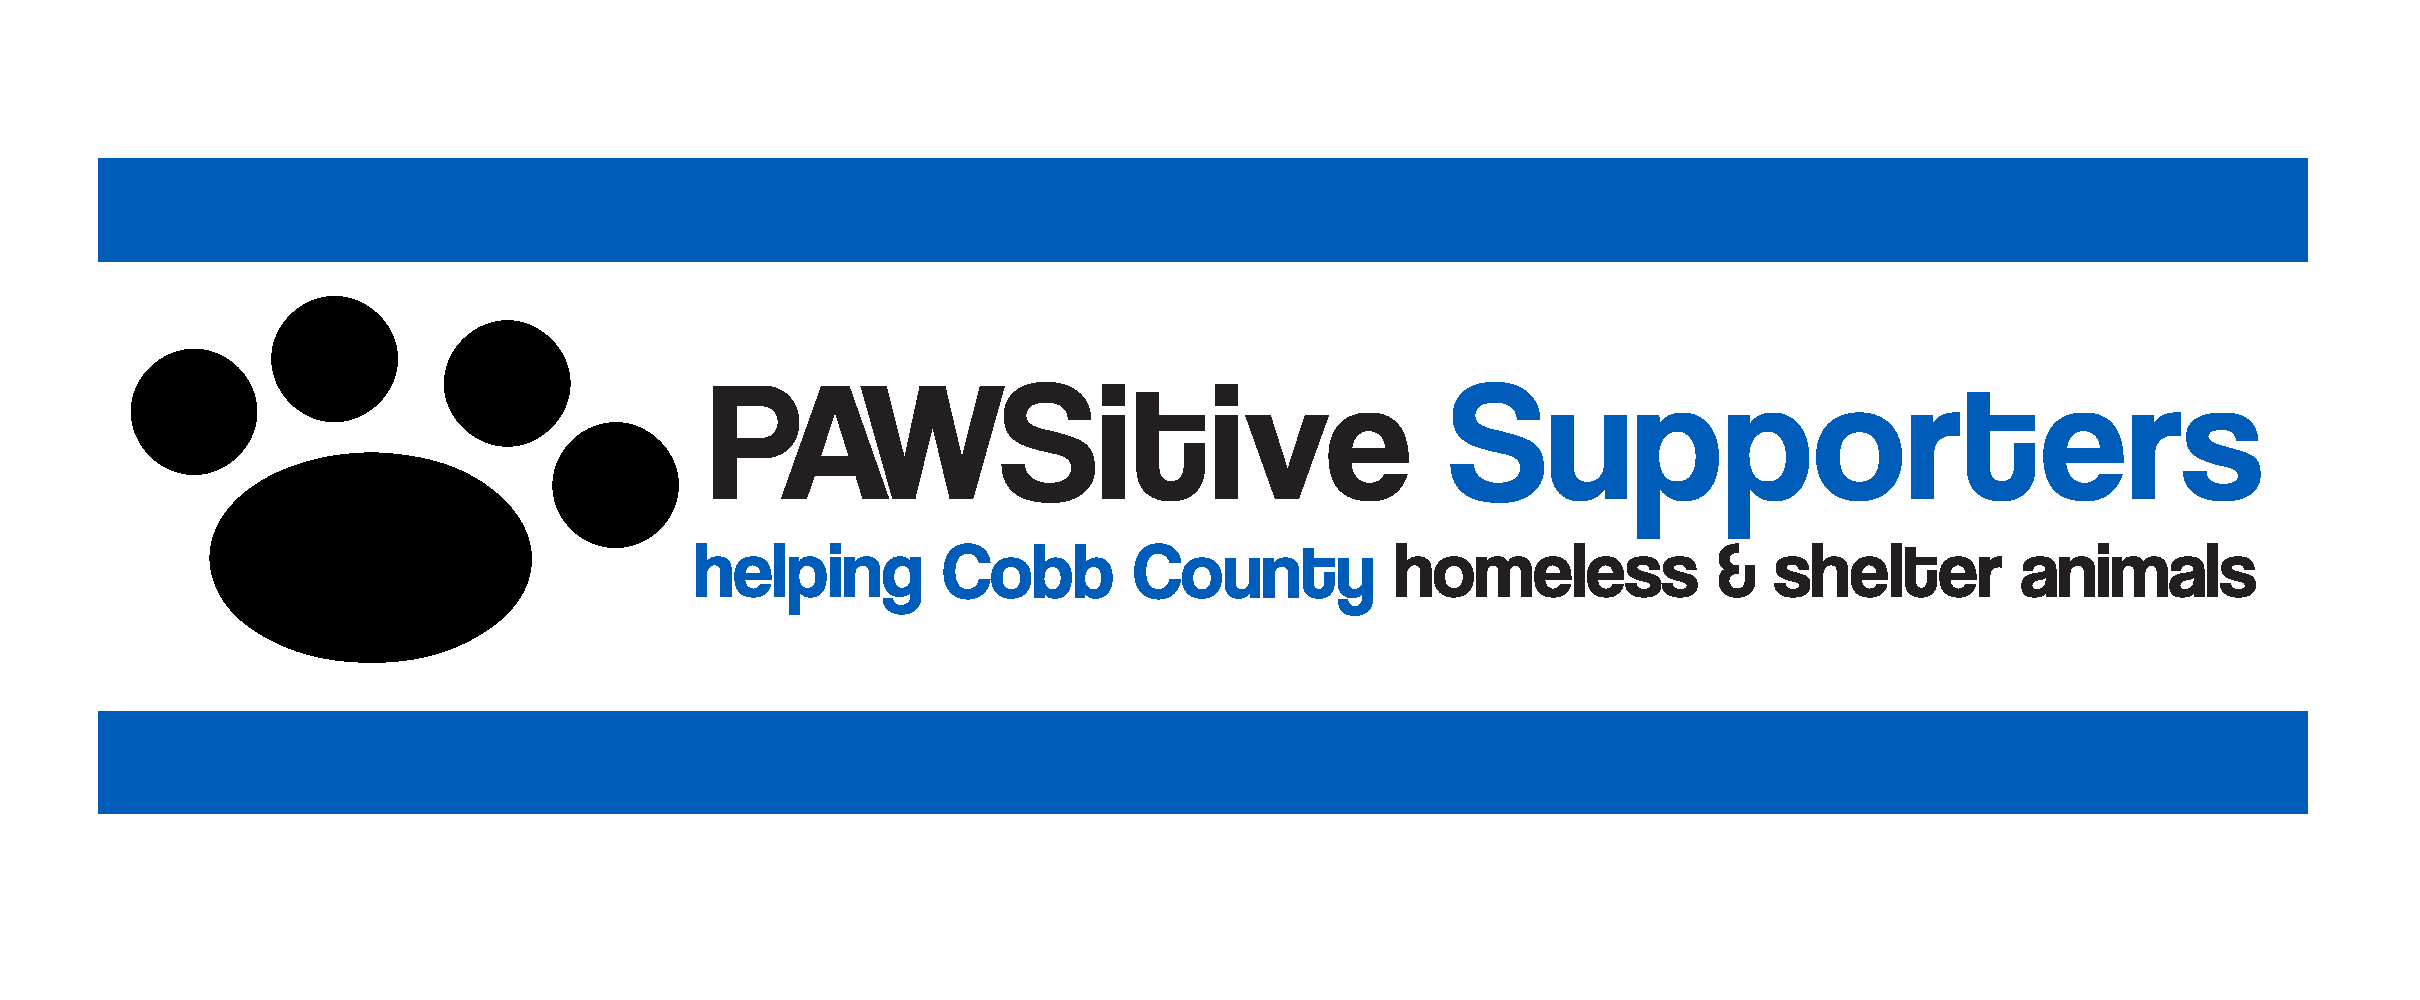 pawsitive supporters